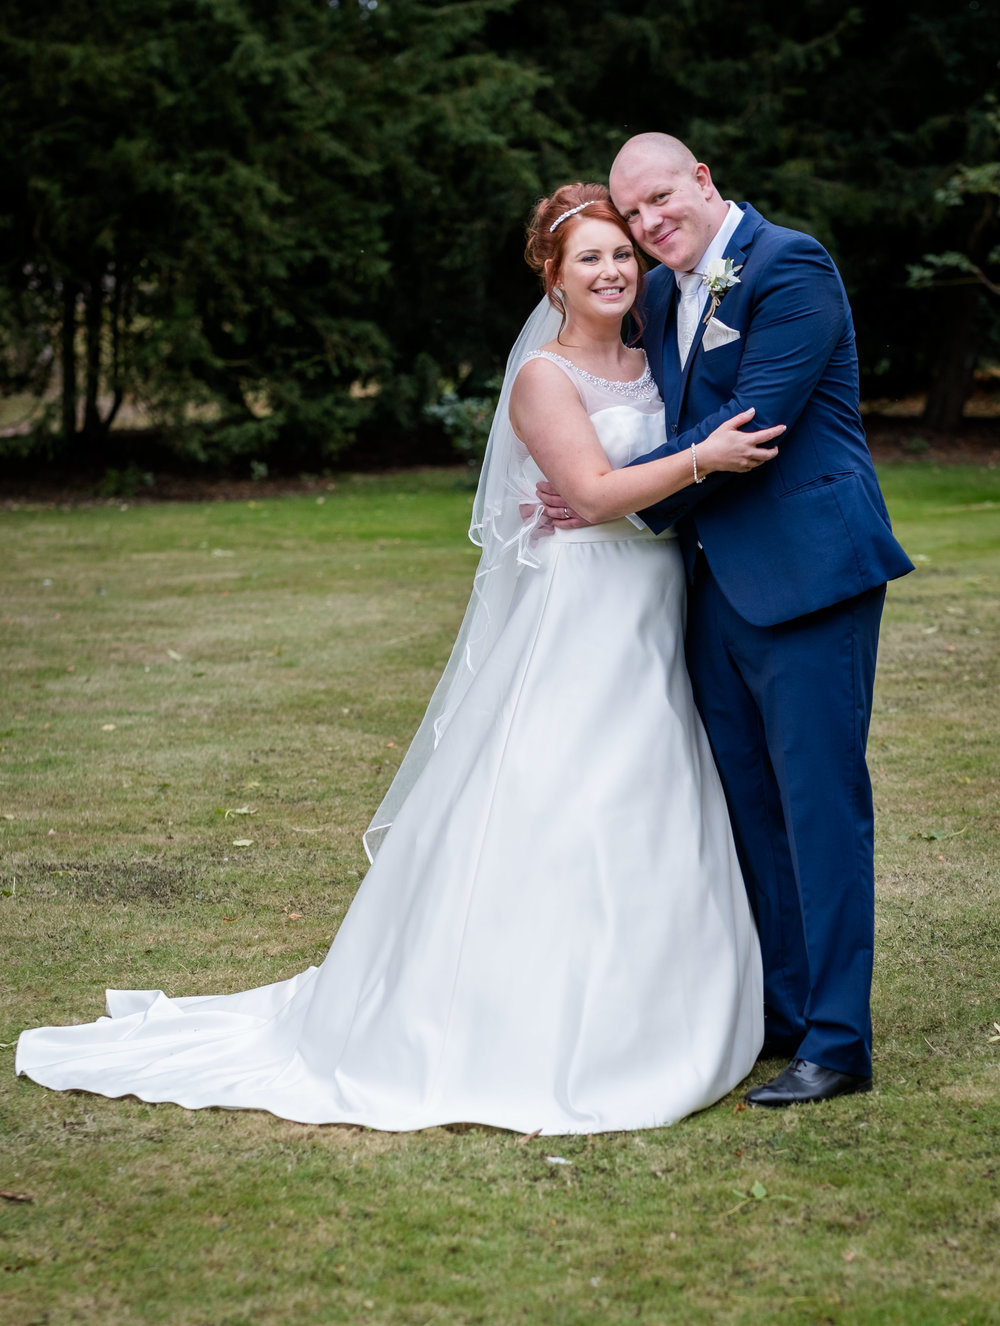 Essex wedding photography, Mulberry House wedding photographer